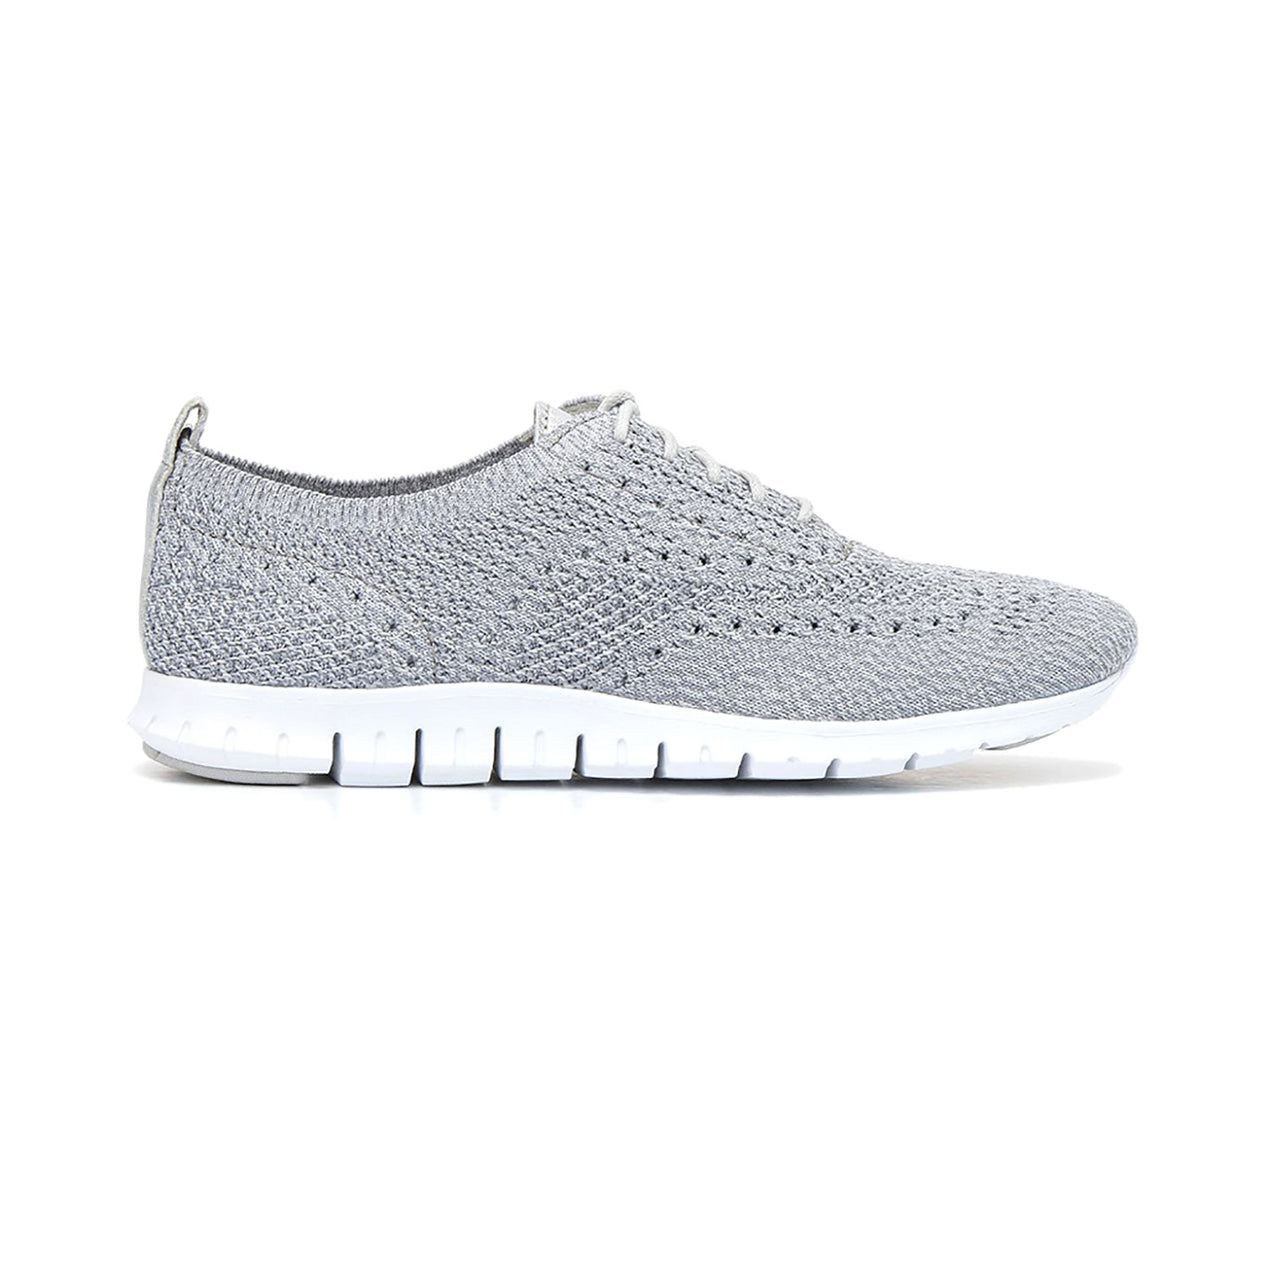 0be5ef0a5b0d Cole Haan Women s Zerogrand Stitchlite Oxford Shoes